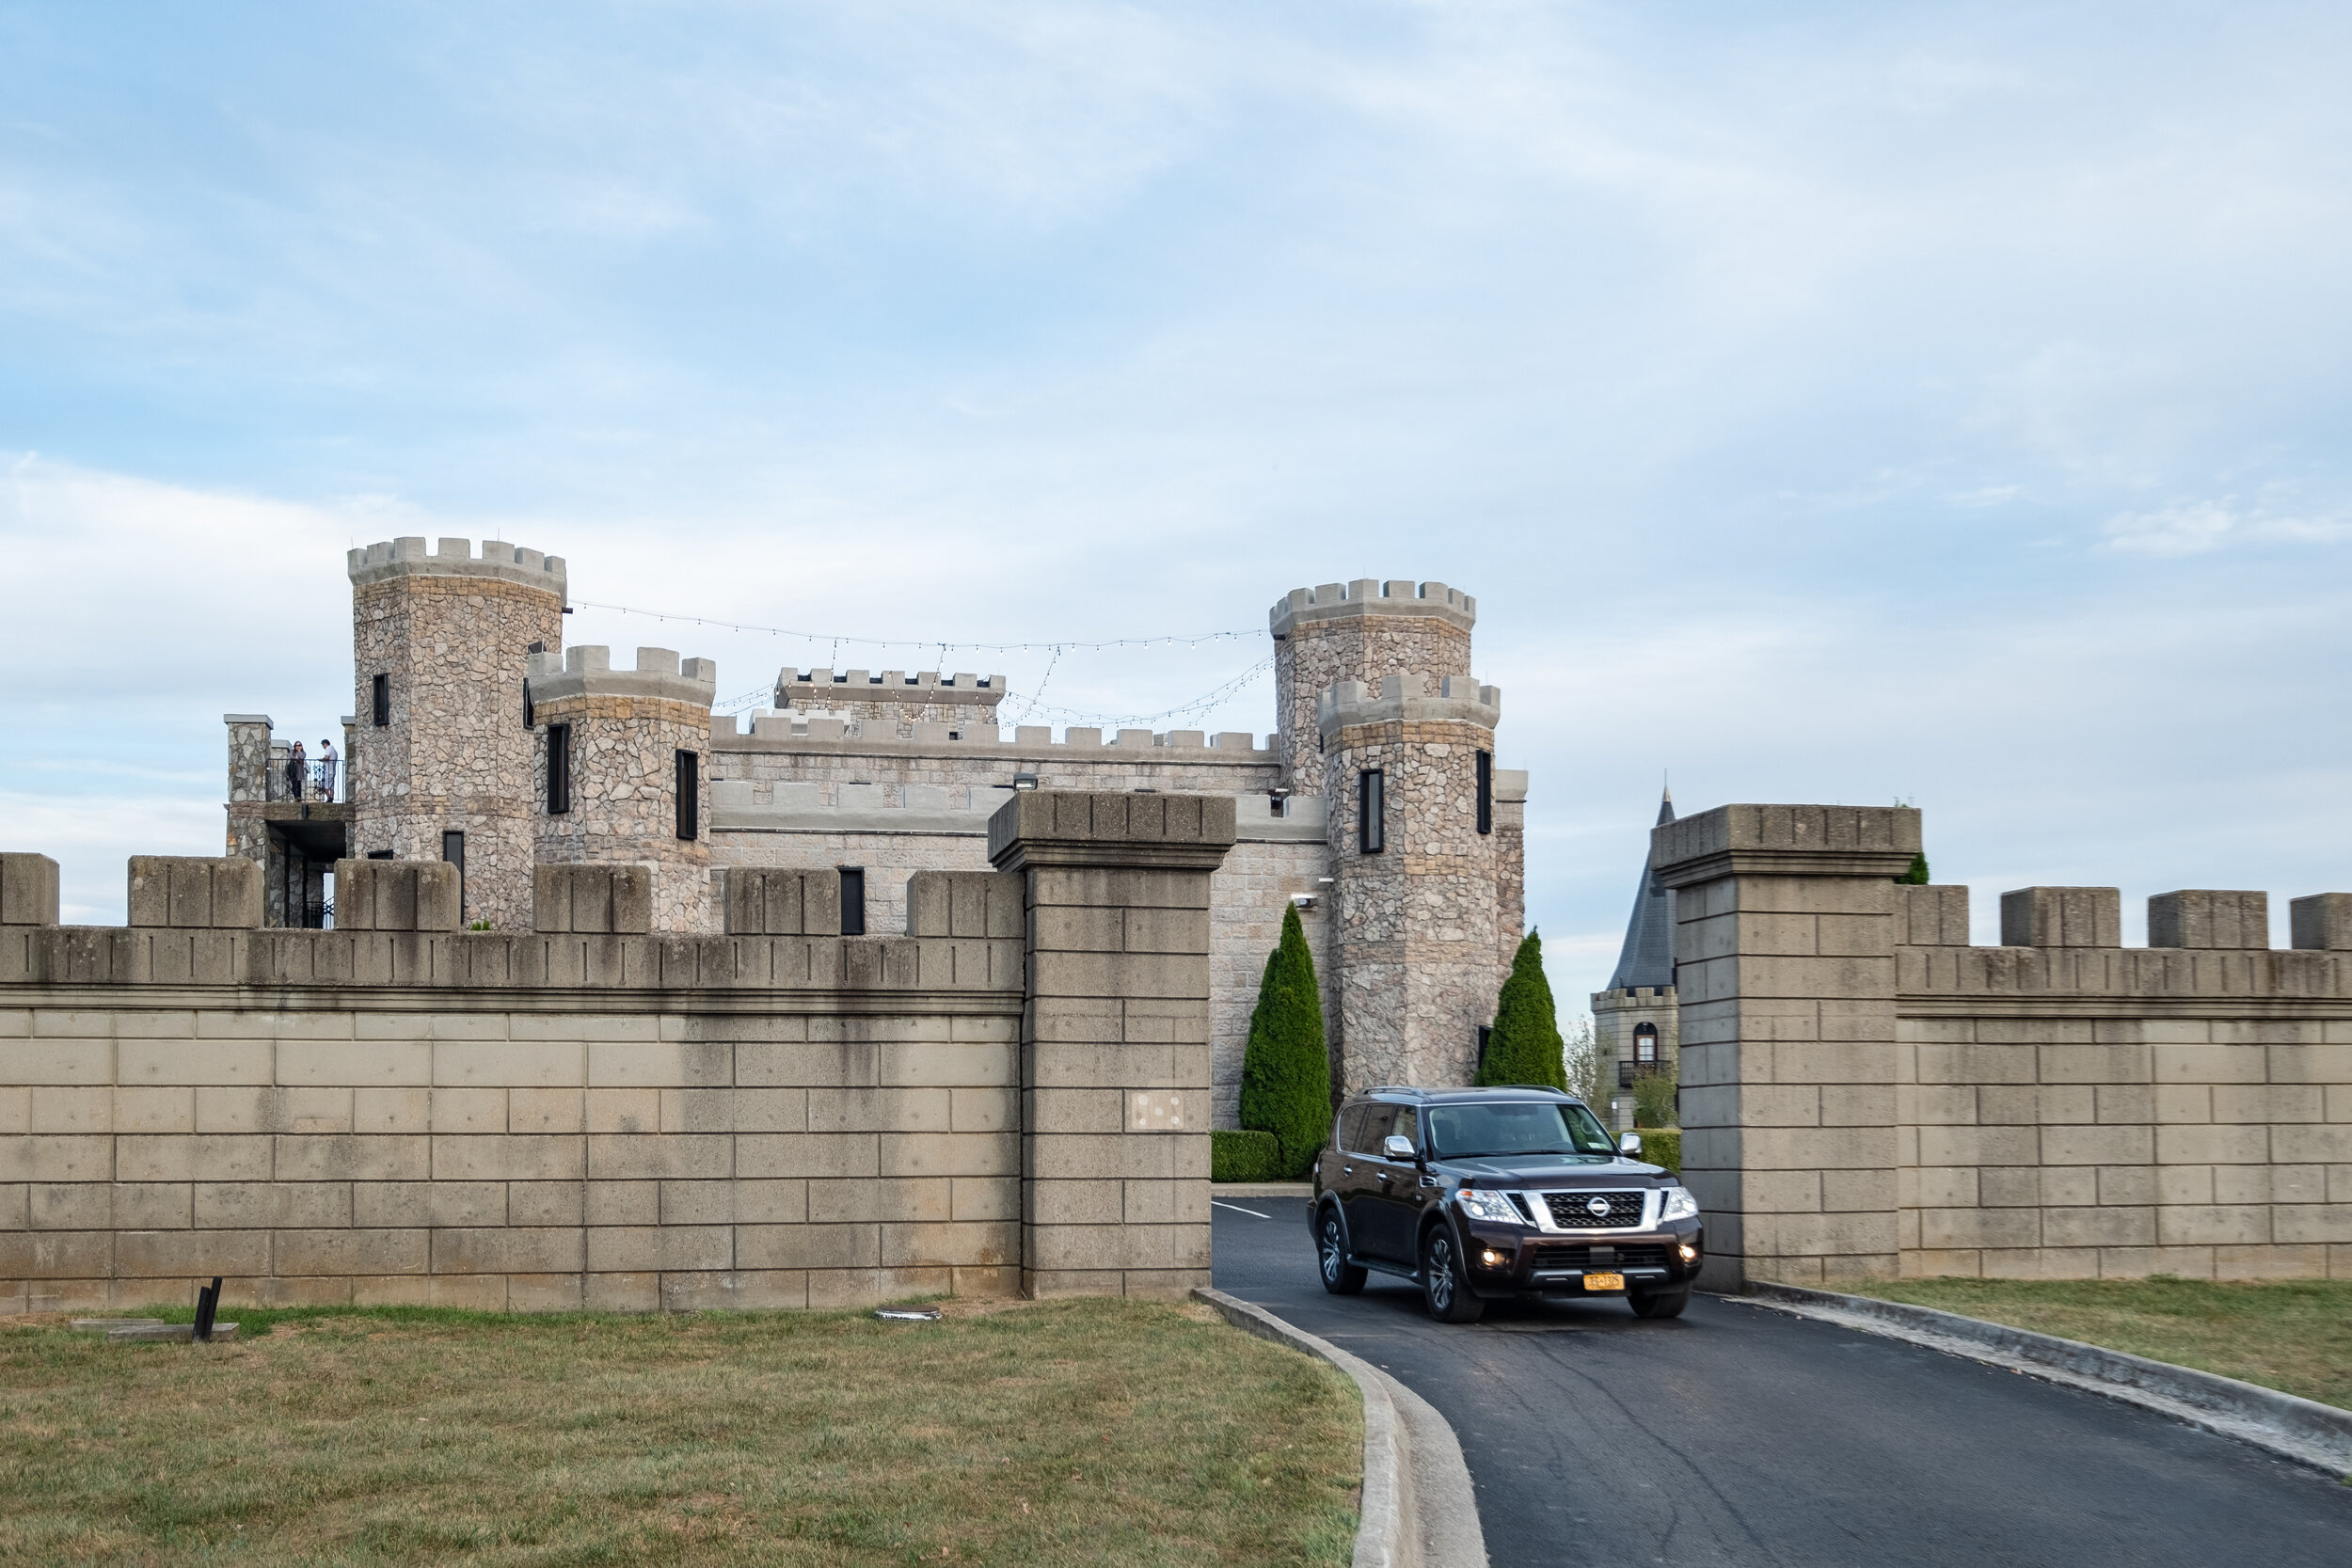 A luxurious ride calls for a luxurious hotel… castle anyone?